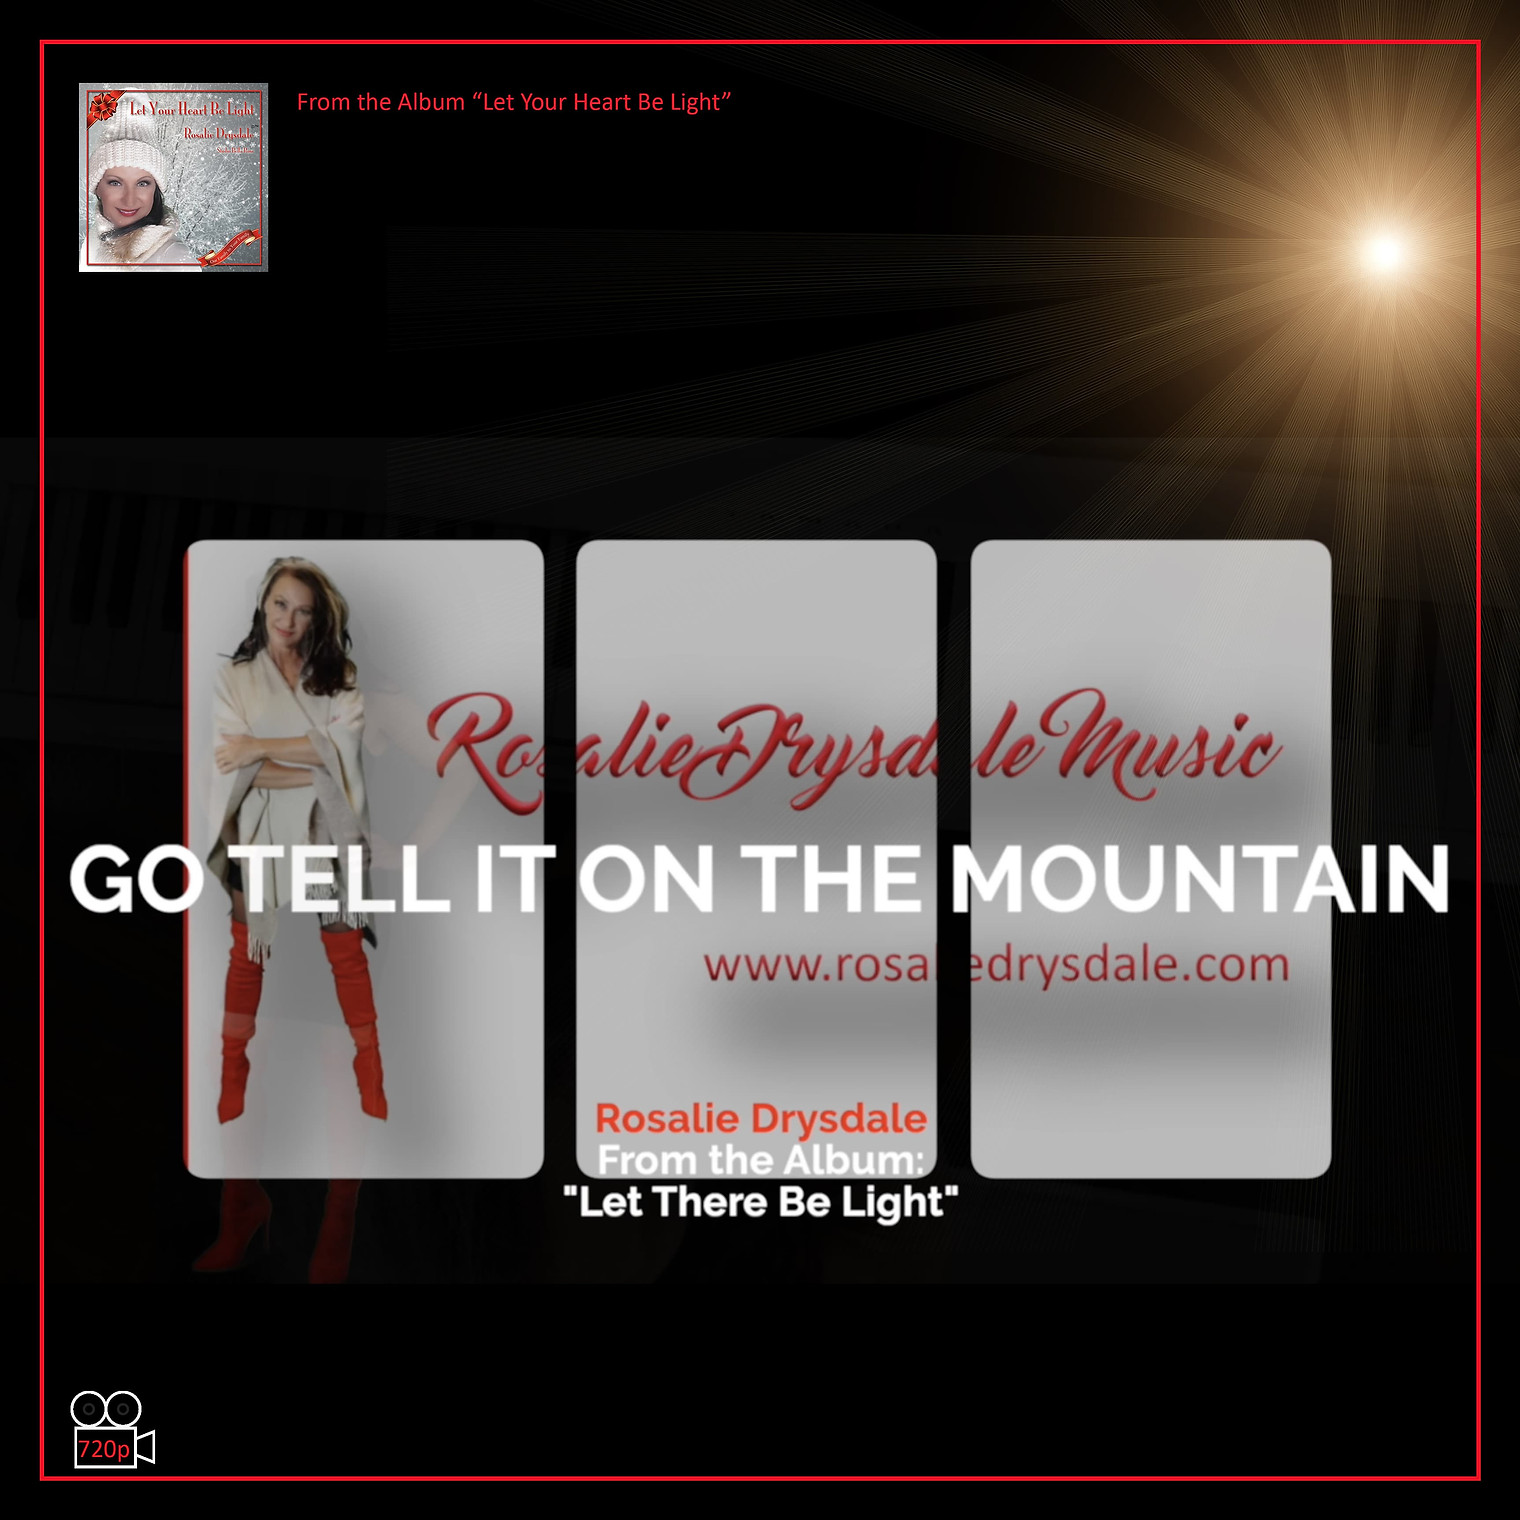 Tell It On The Mountain Video Cover.jpg